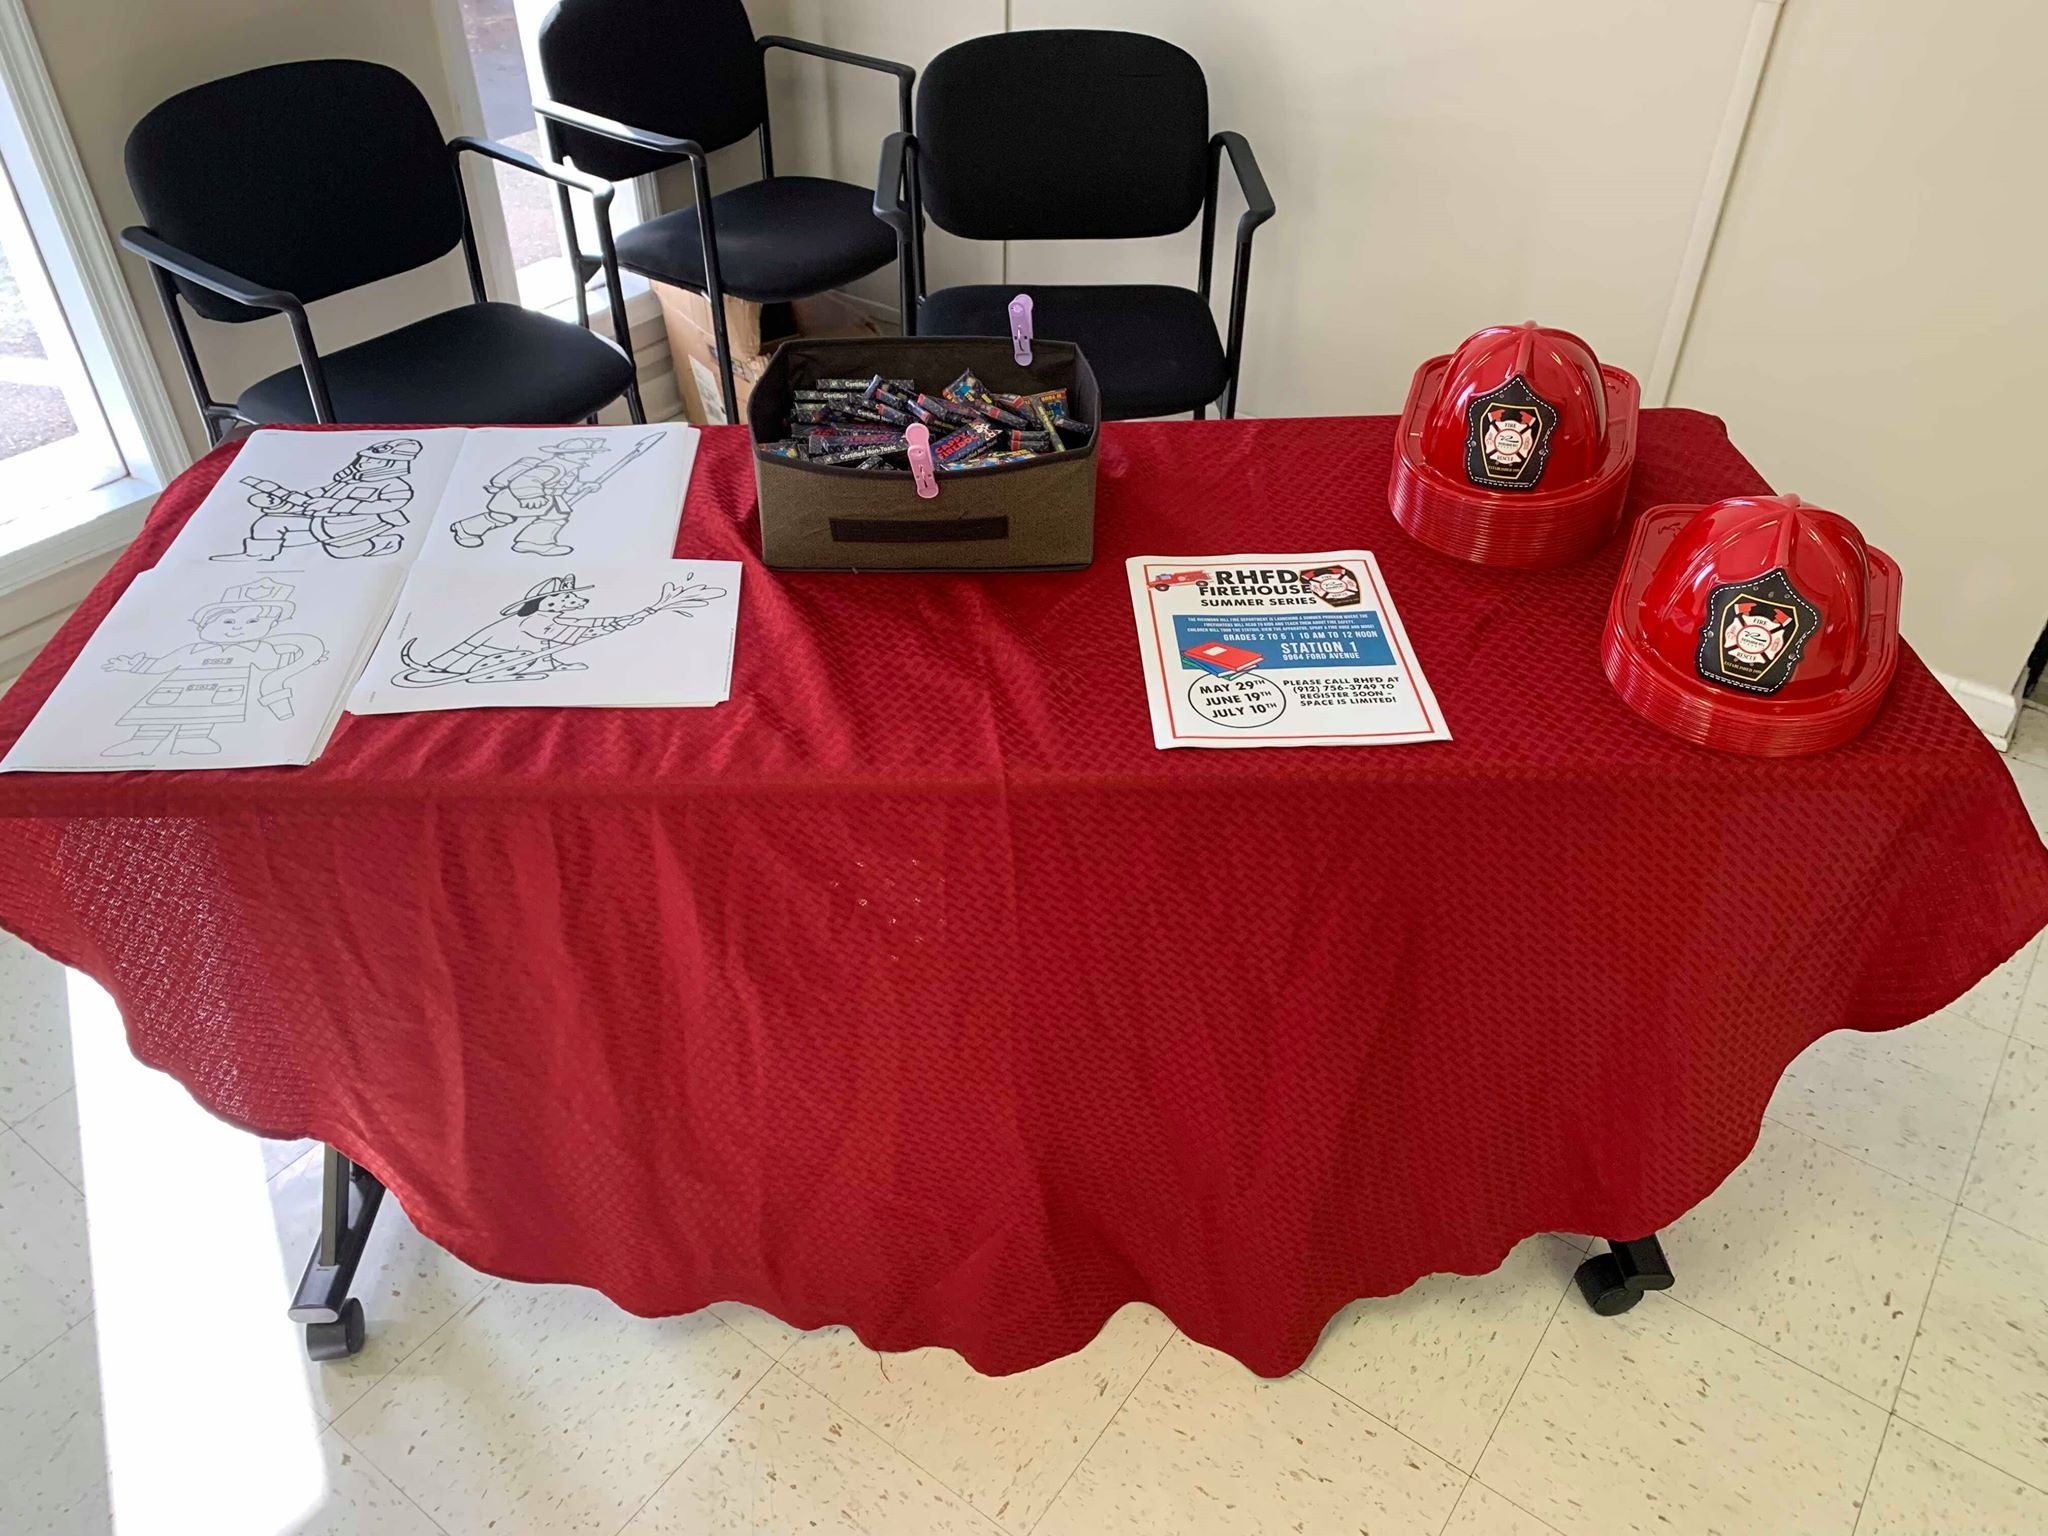 A table with fire hats, coloring sheets, and crayons for kids